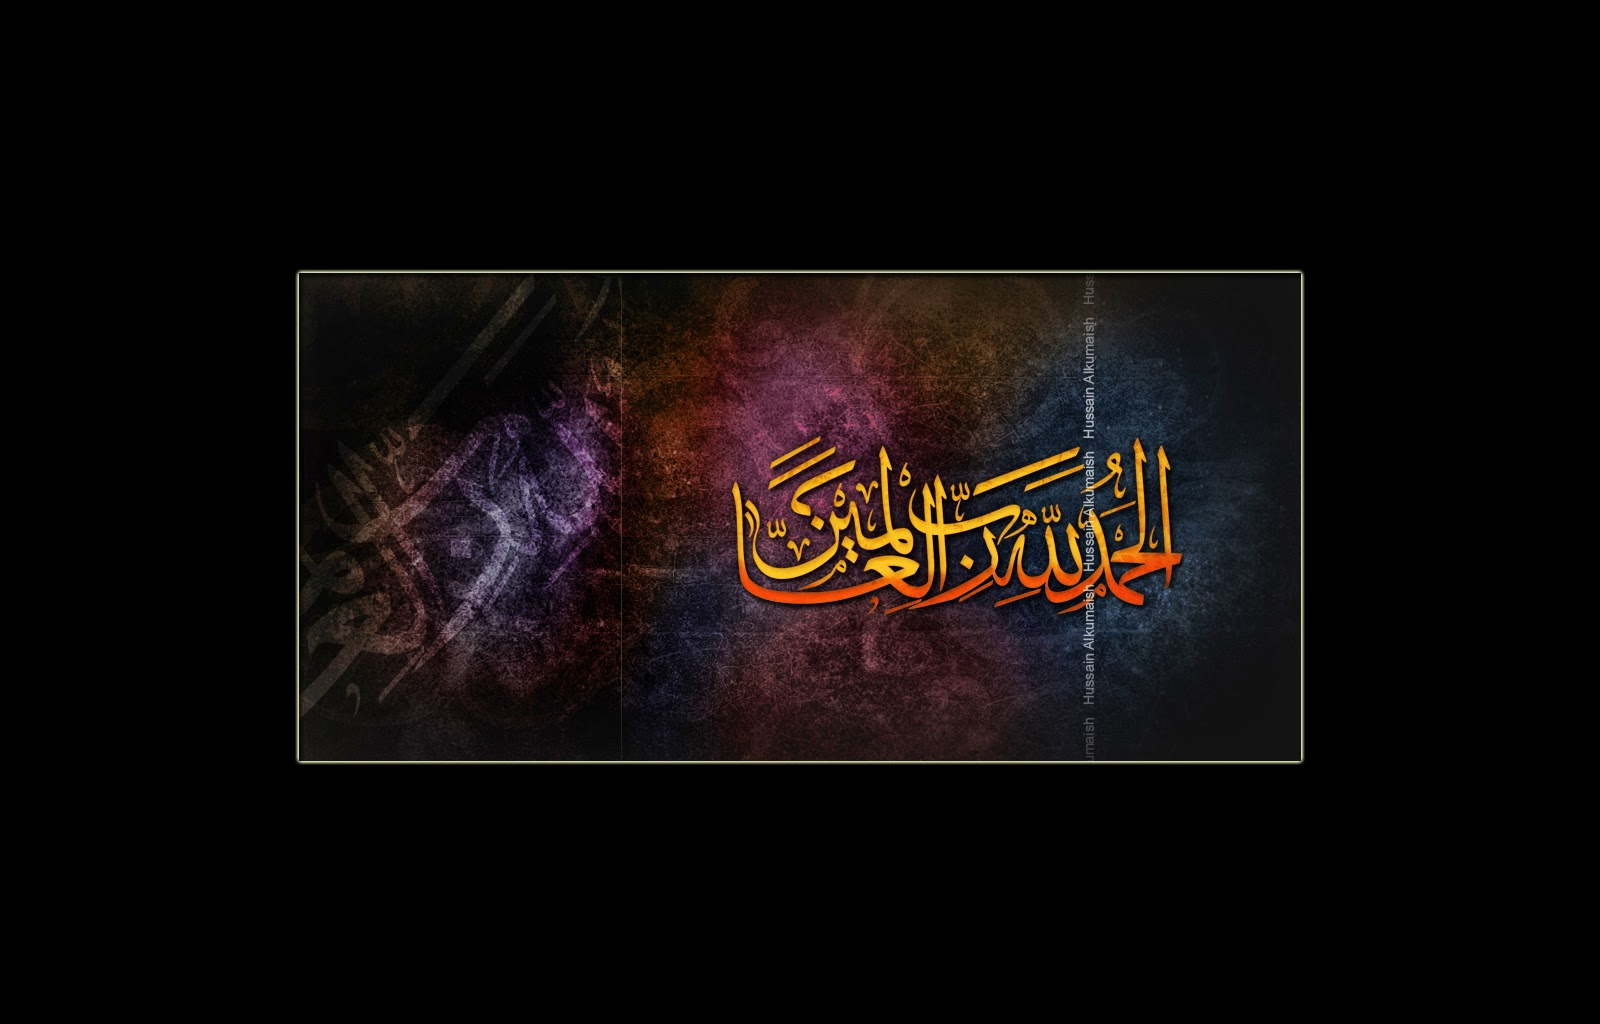 Islamic wallpaper Calligraphy black background FULL HD and Full Color